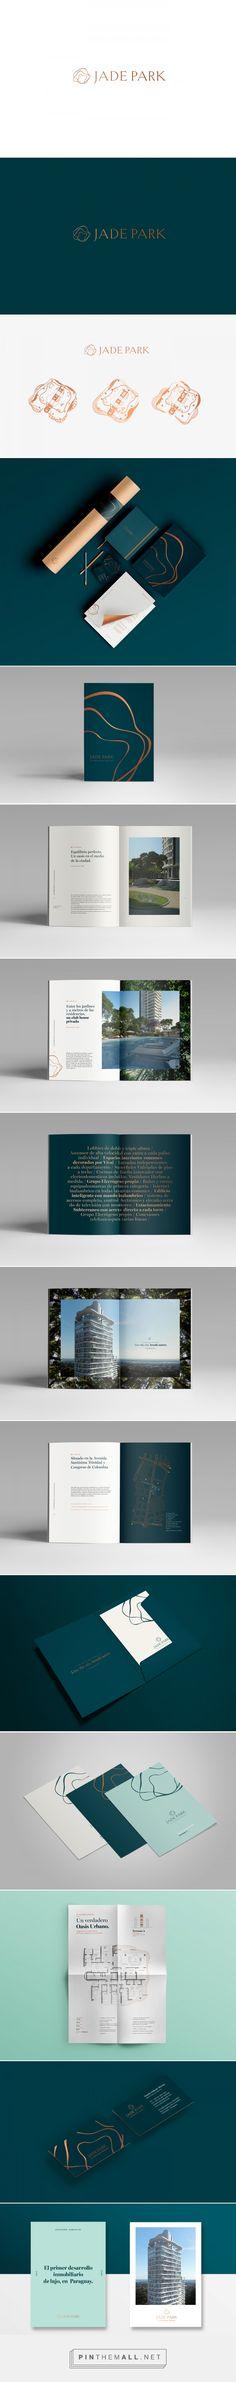 Jade Park on Behance... - a grouped images picture - Pin Them All